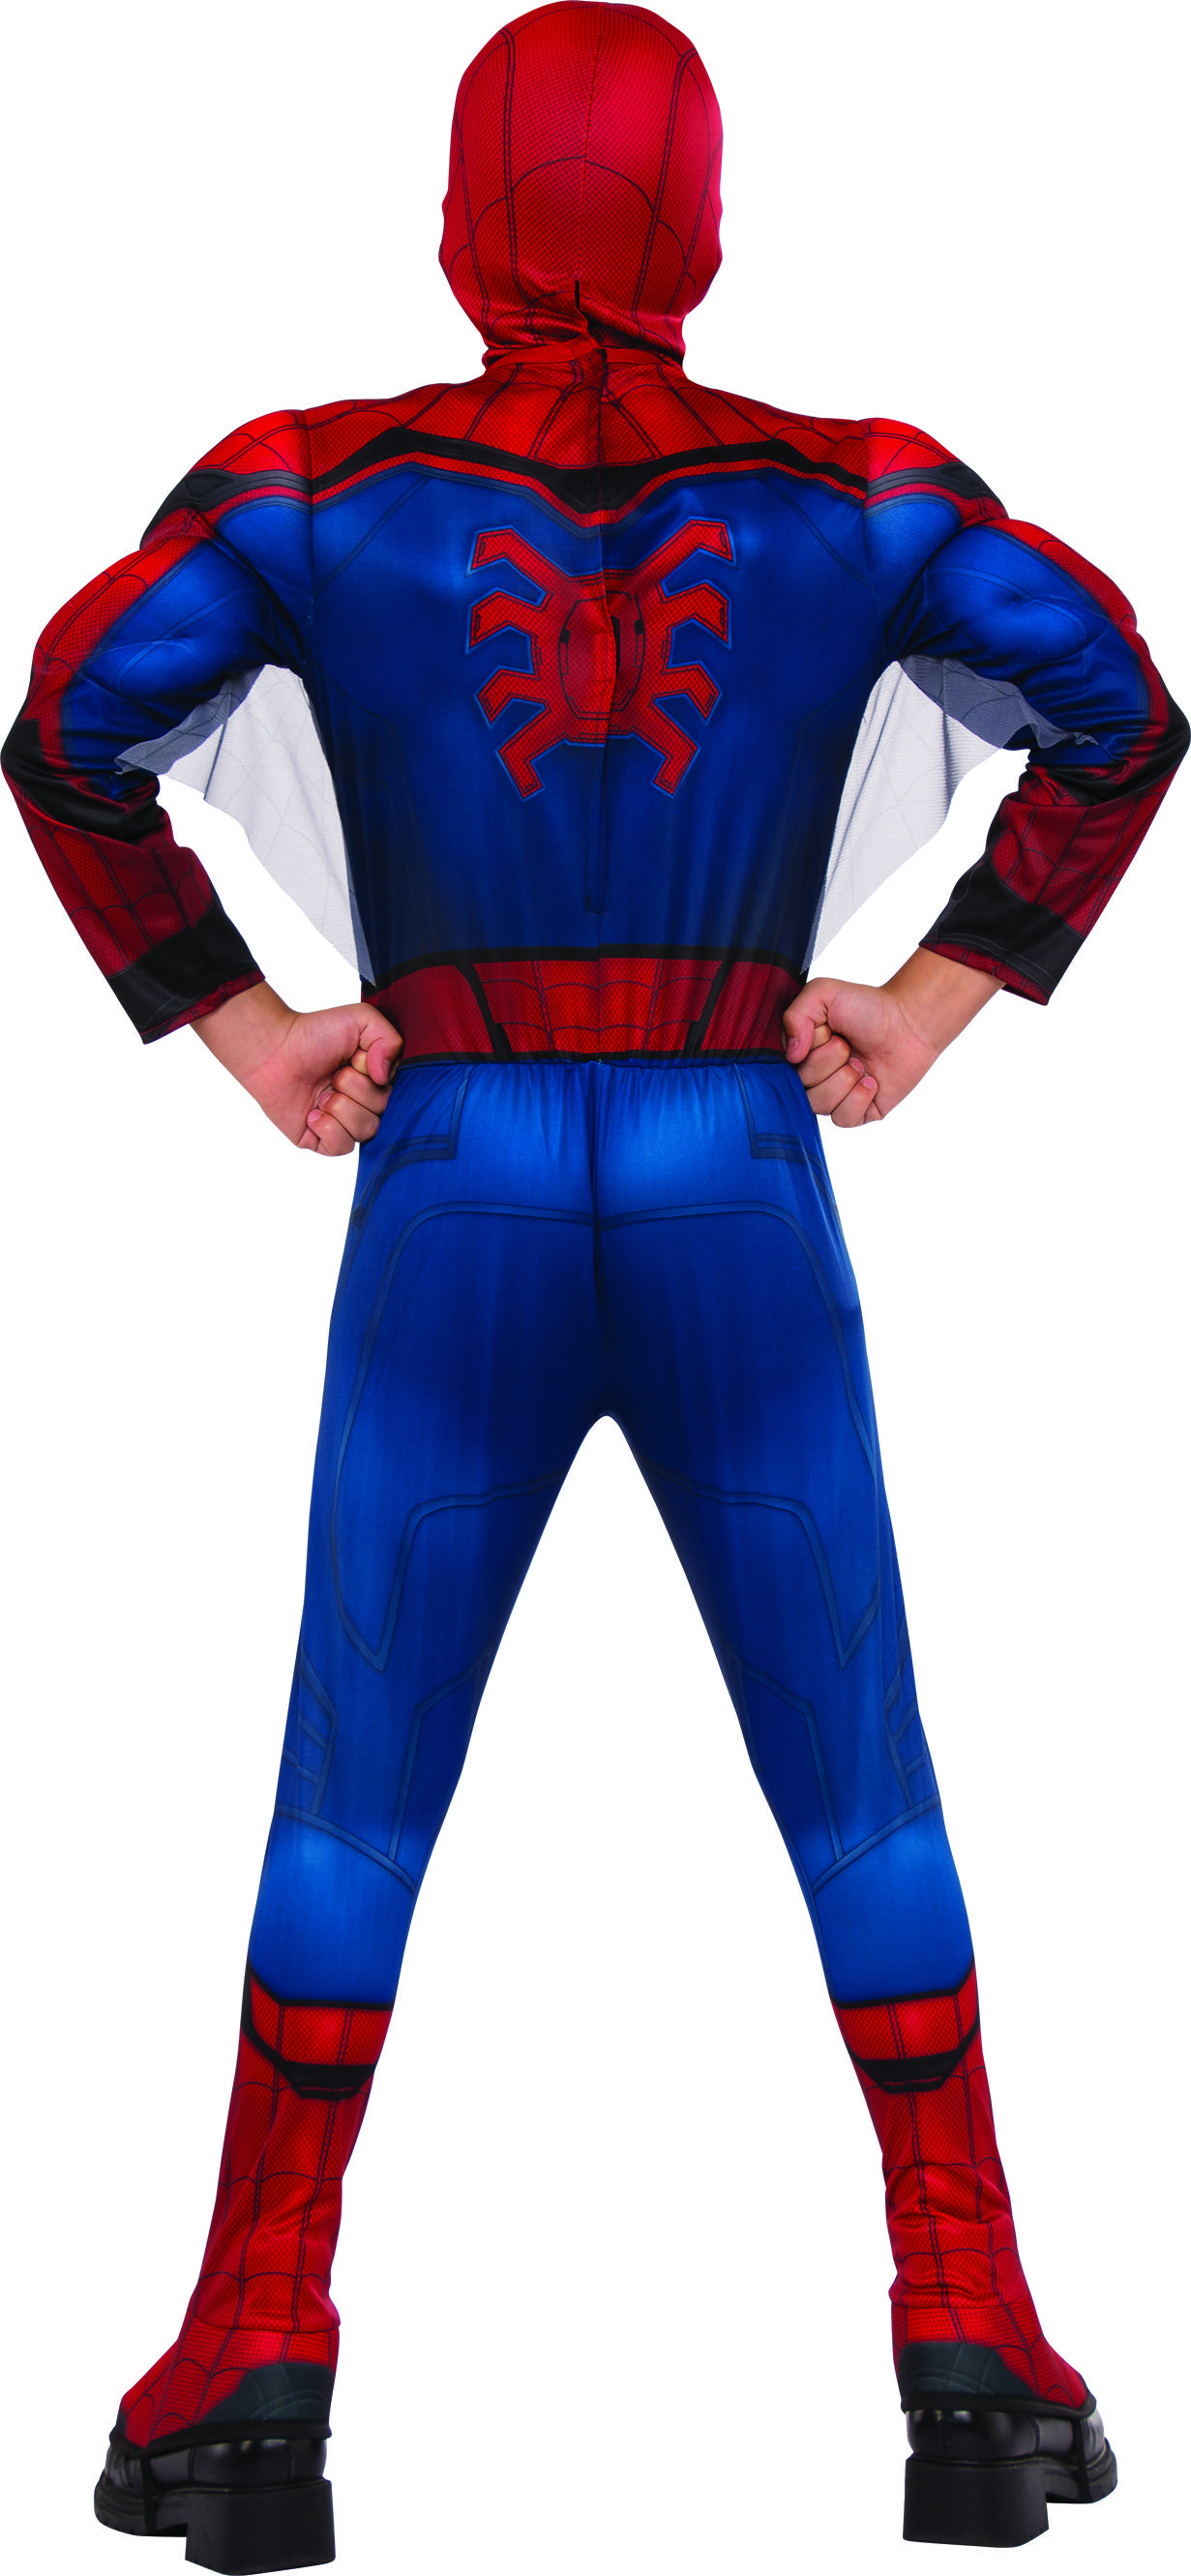 spider man homecoming back of costume your guide for 2017 costumes rh pinterest com spiderman costume hoodie jacket Spider-Man Logos Color Page Print